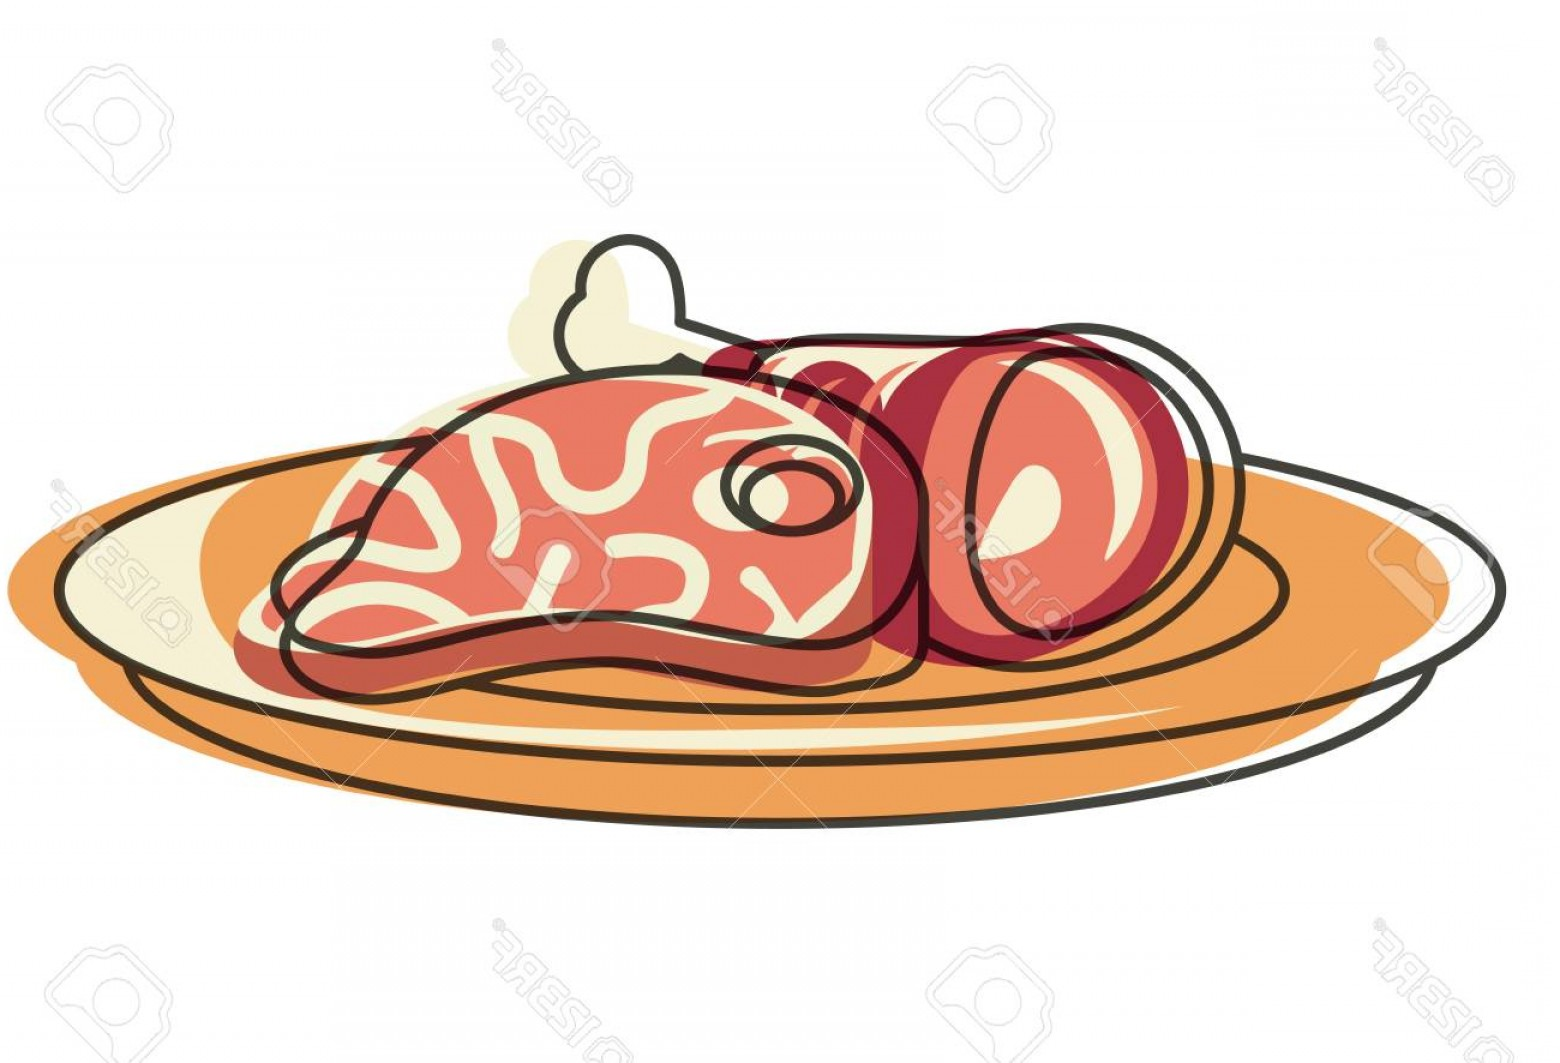 Steak Taco Vector Art: Photostock Vector Steak And Ham Leg Icon Design Illustration Isolated Vector